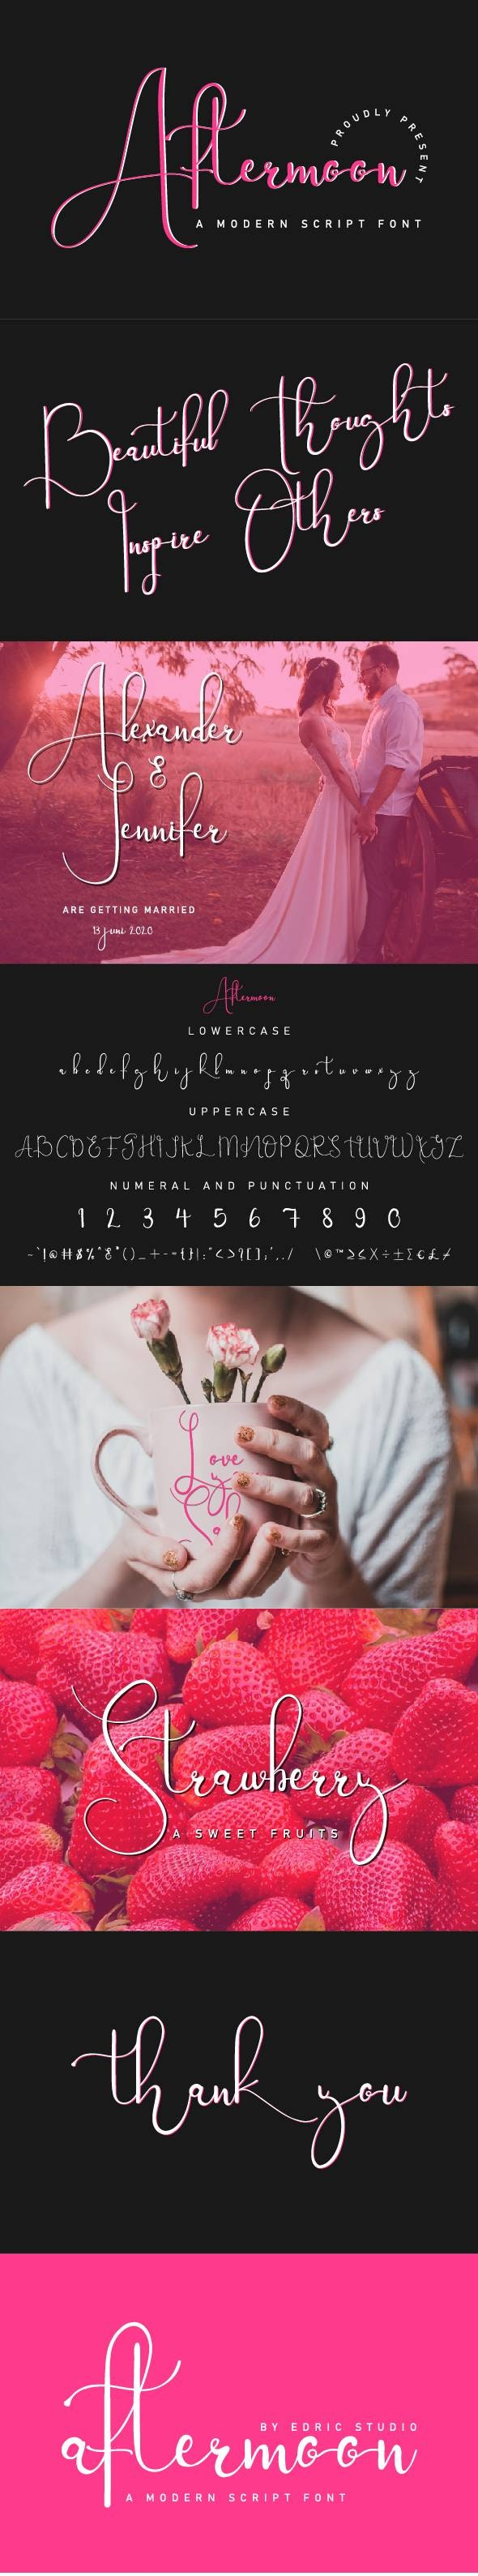 Aftermoon Calligraphy Font - Calligraphy Script